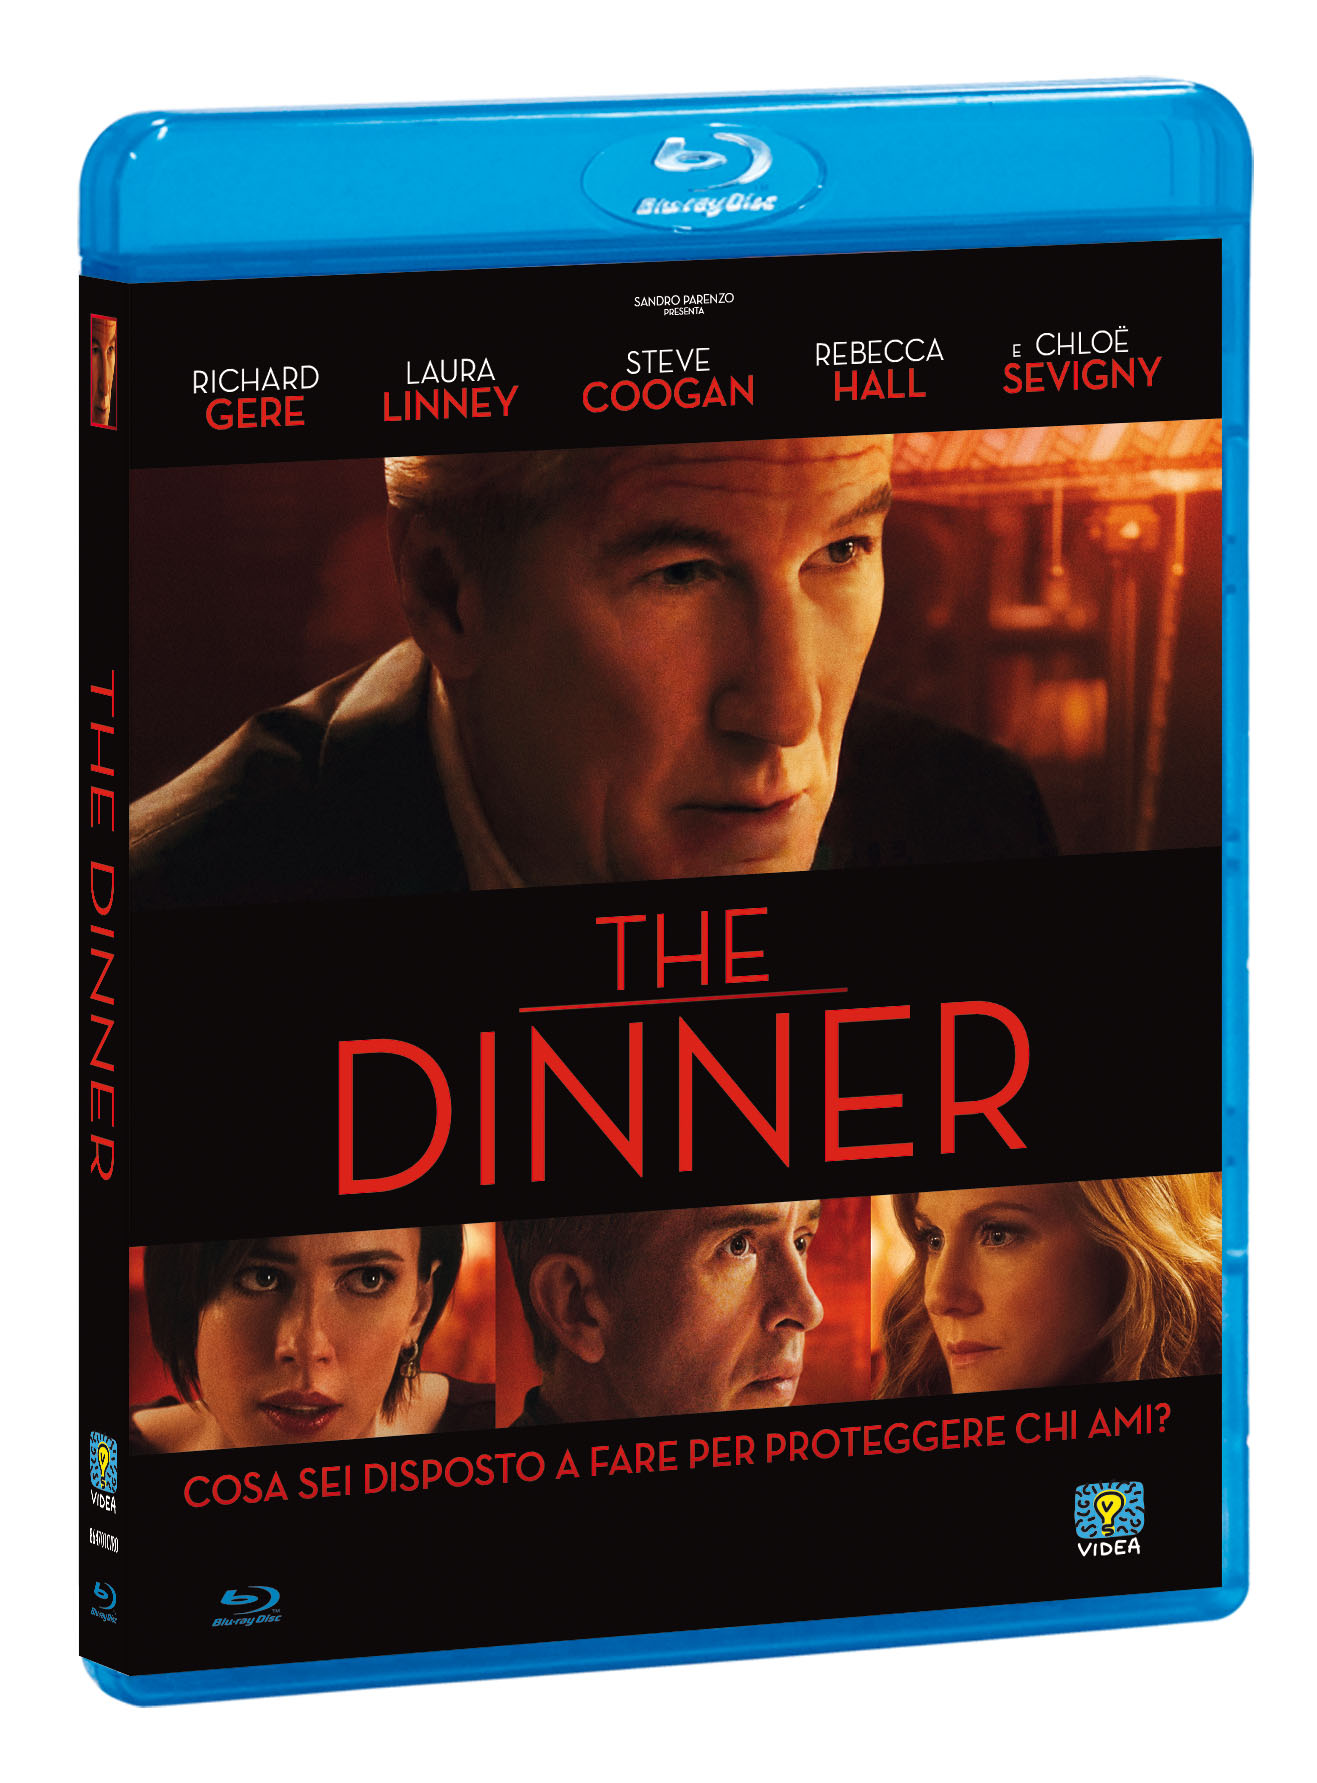 THE DINNER - BLU RAY